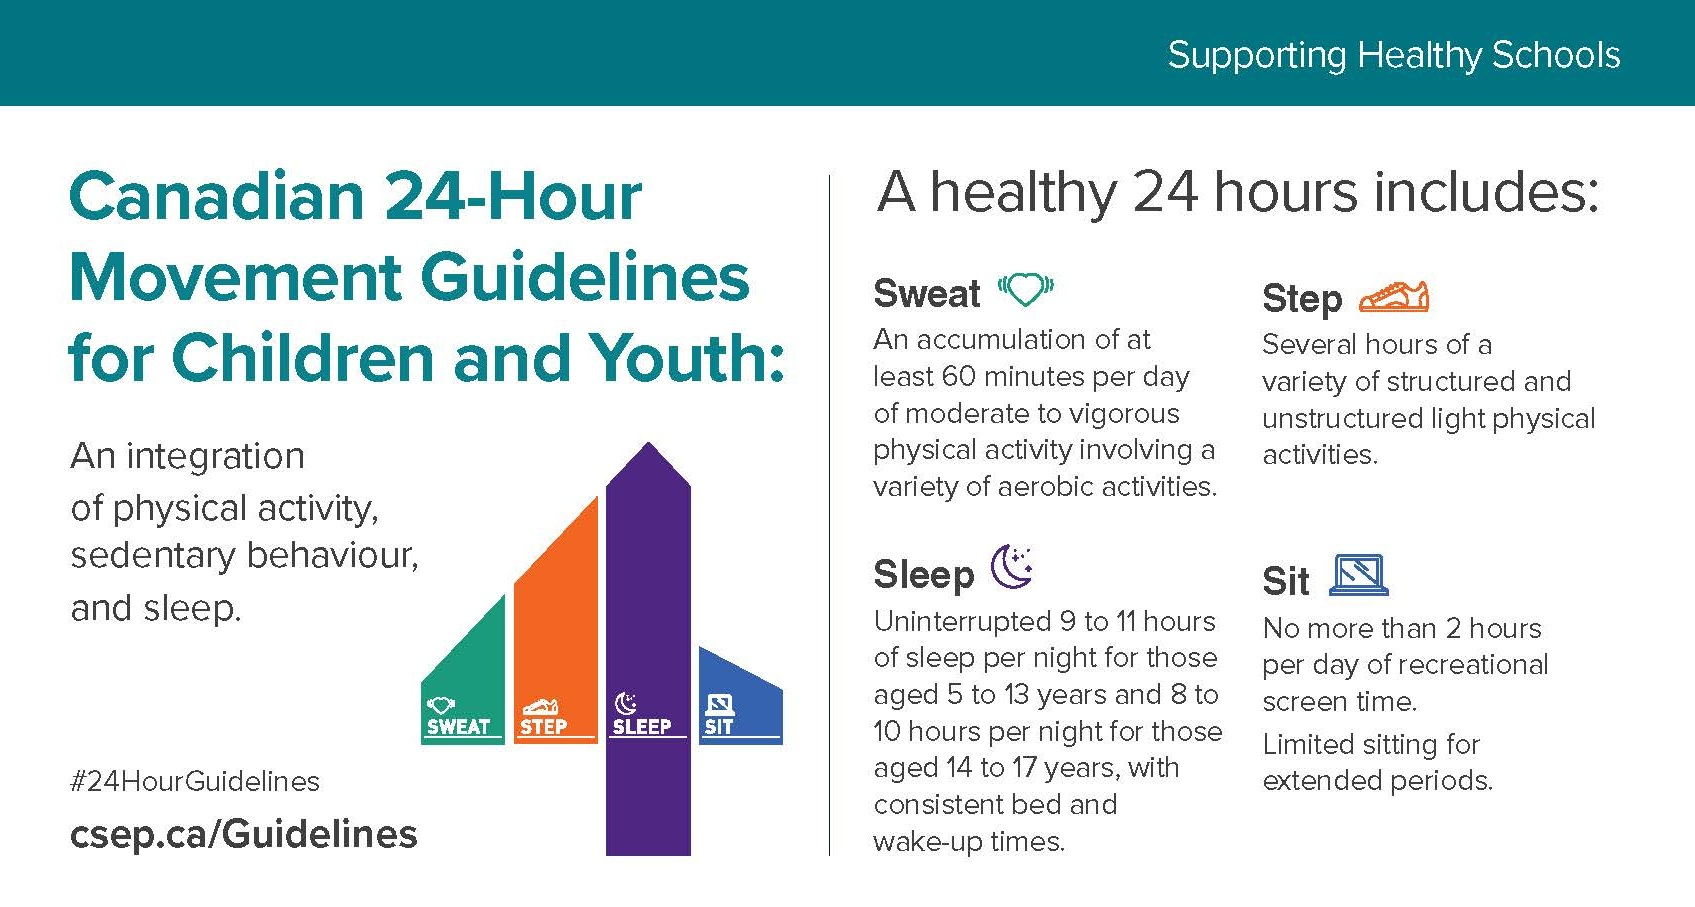 Download your copy of the 24-Hour Movement Guidelines  here